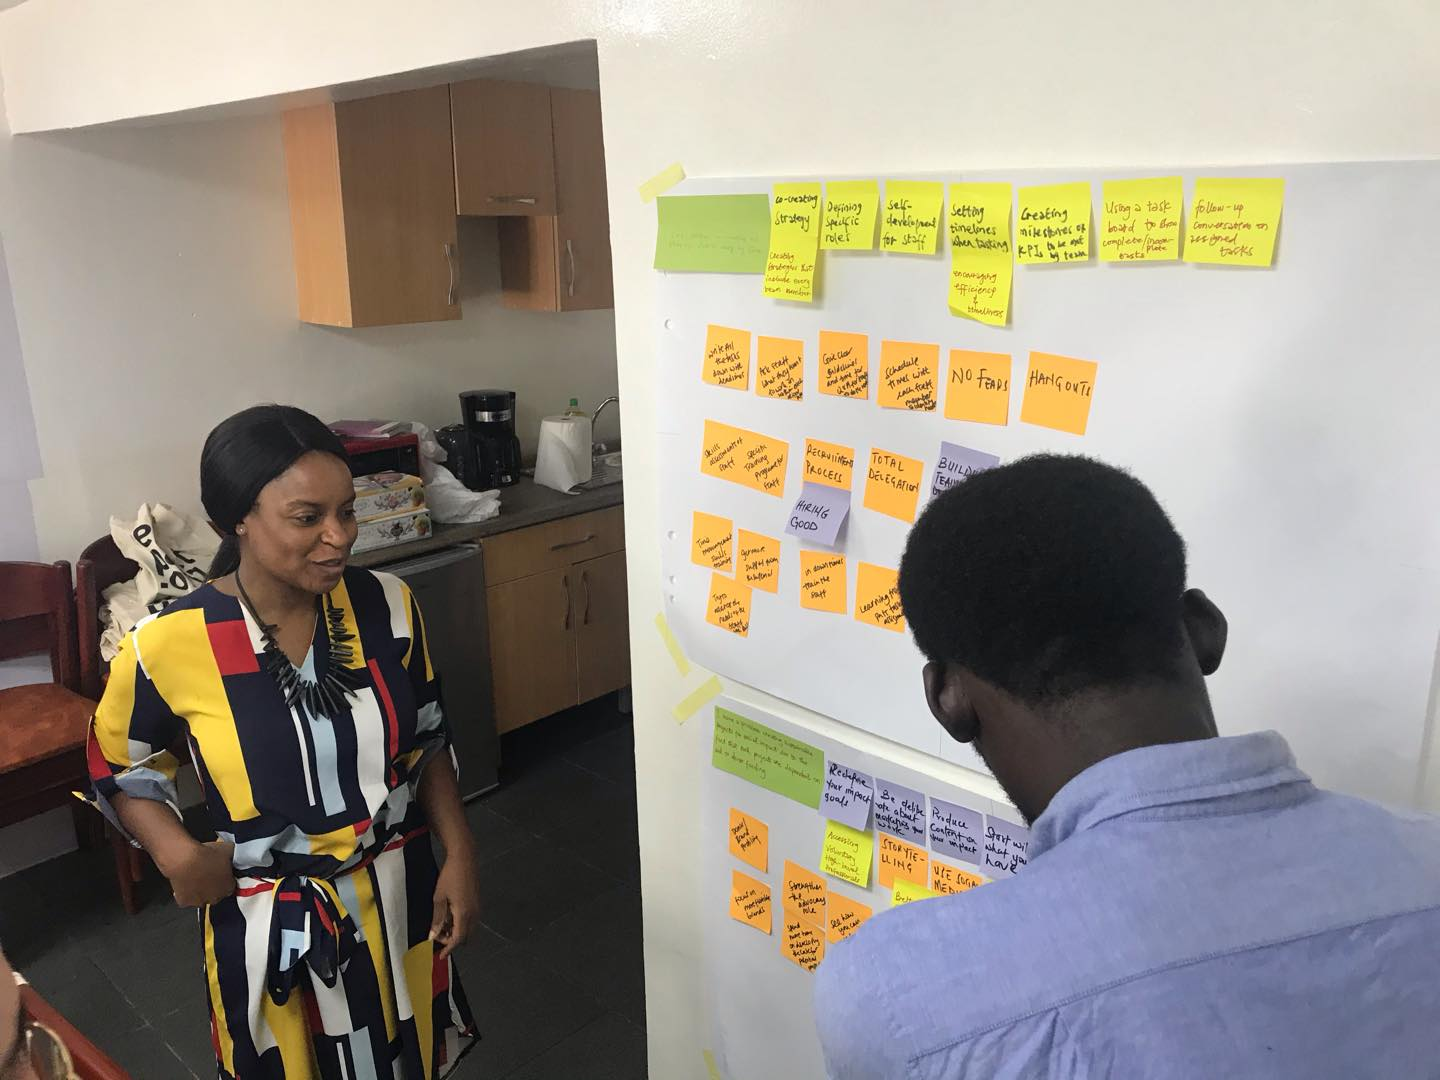 PDL Ghana 2020 took place at enpact's new office in Accra.